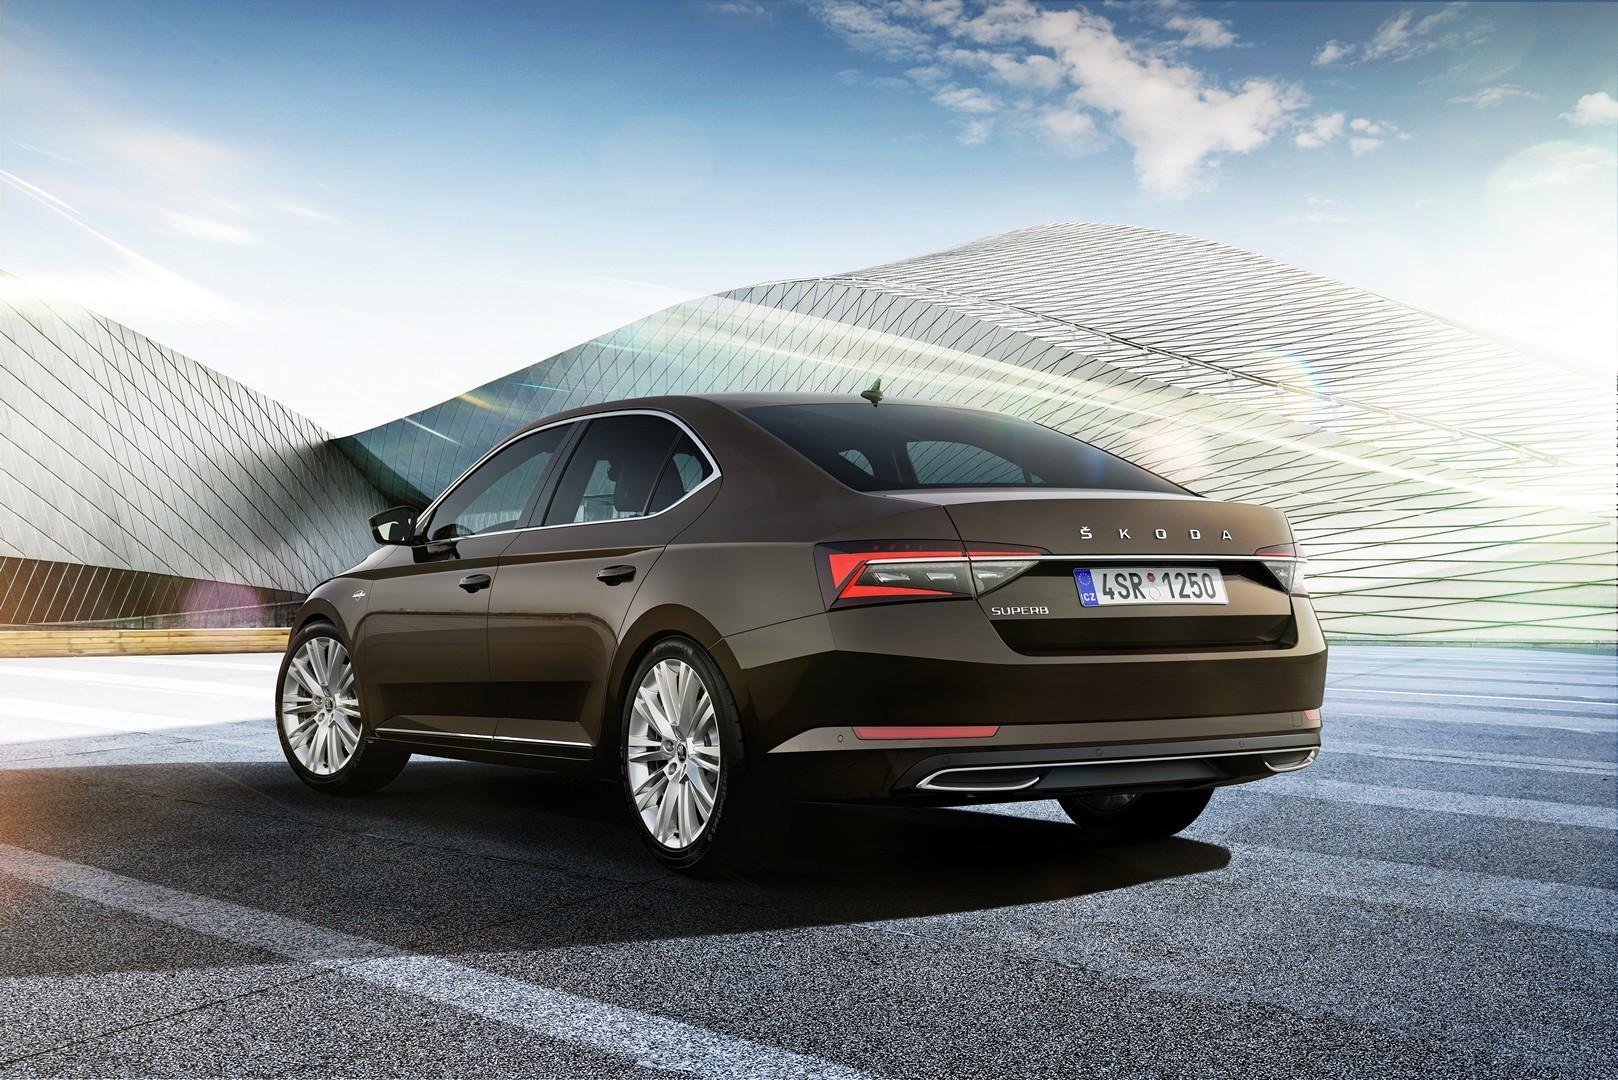 Volkswagen Chooses Turkey For 4 Passat, 4 Skoda Superb